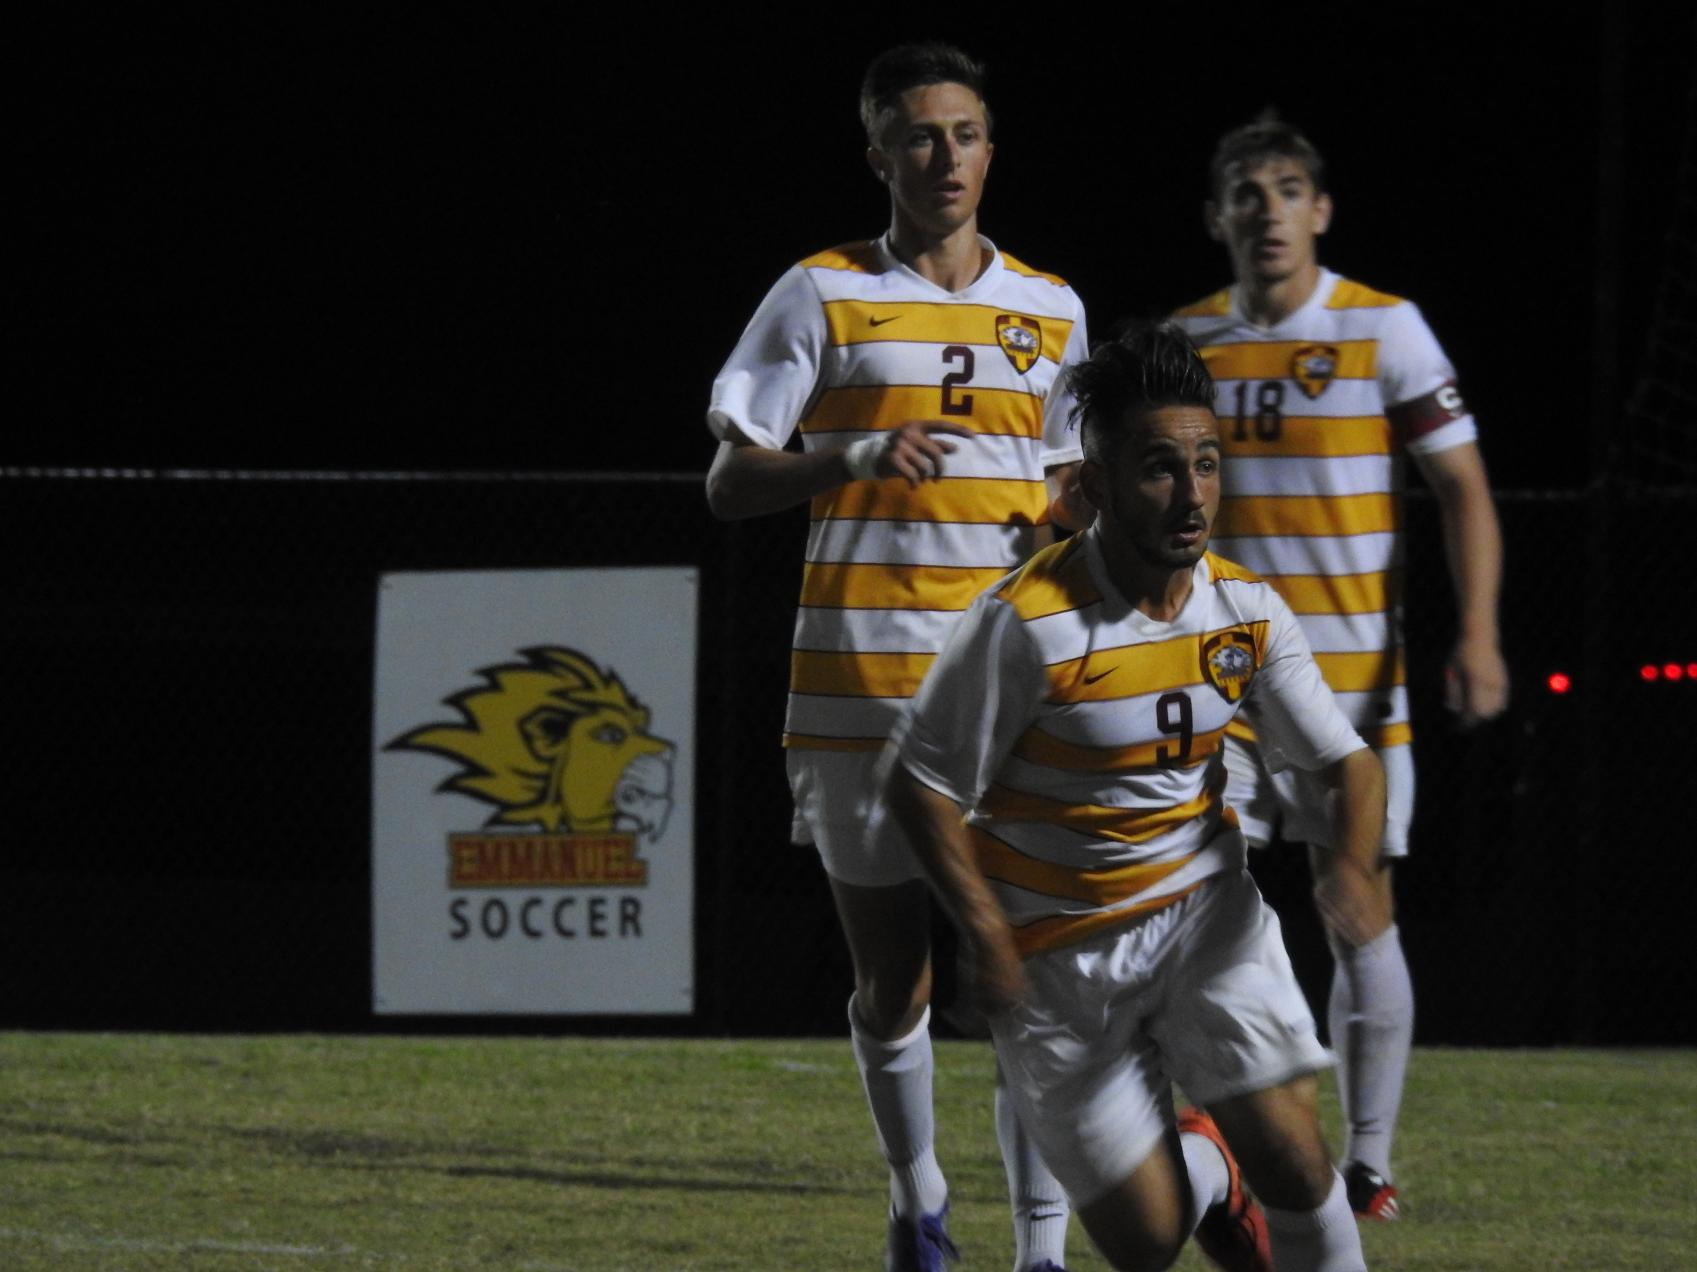 The Lions Soccer Team Fall in Double Overtime